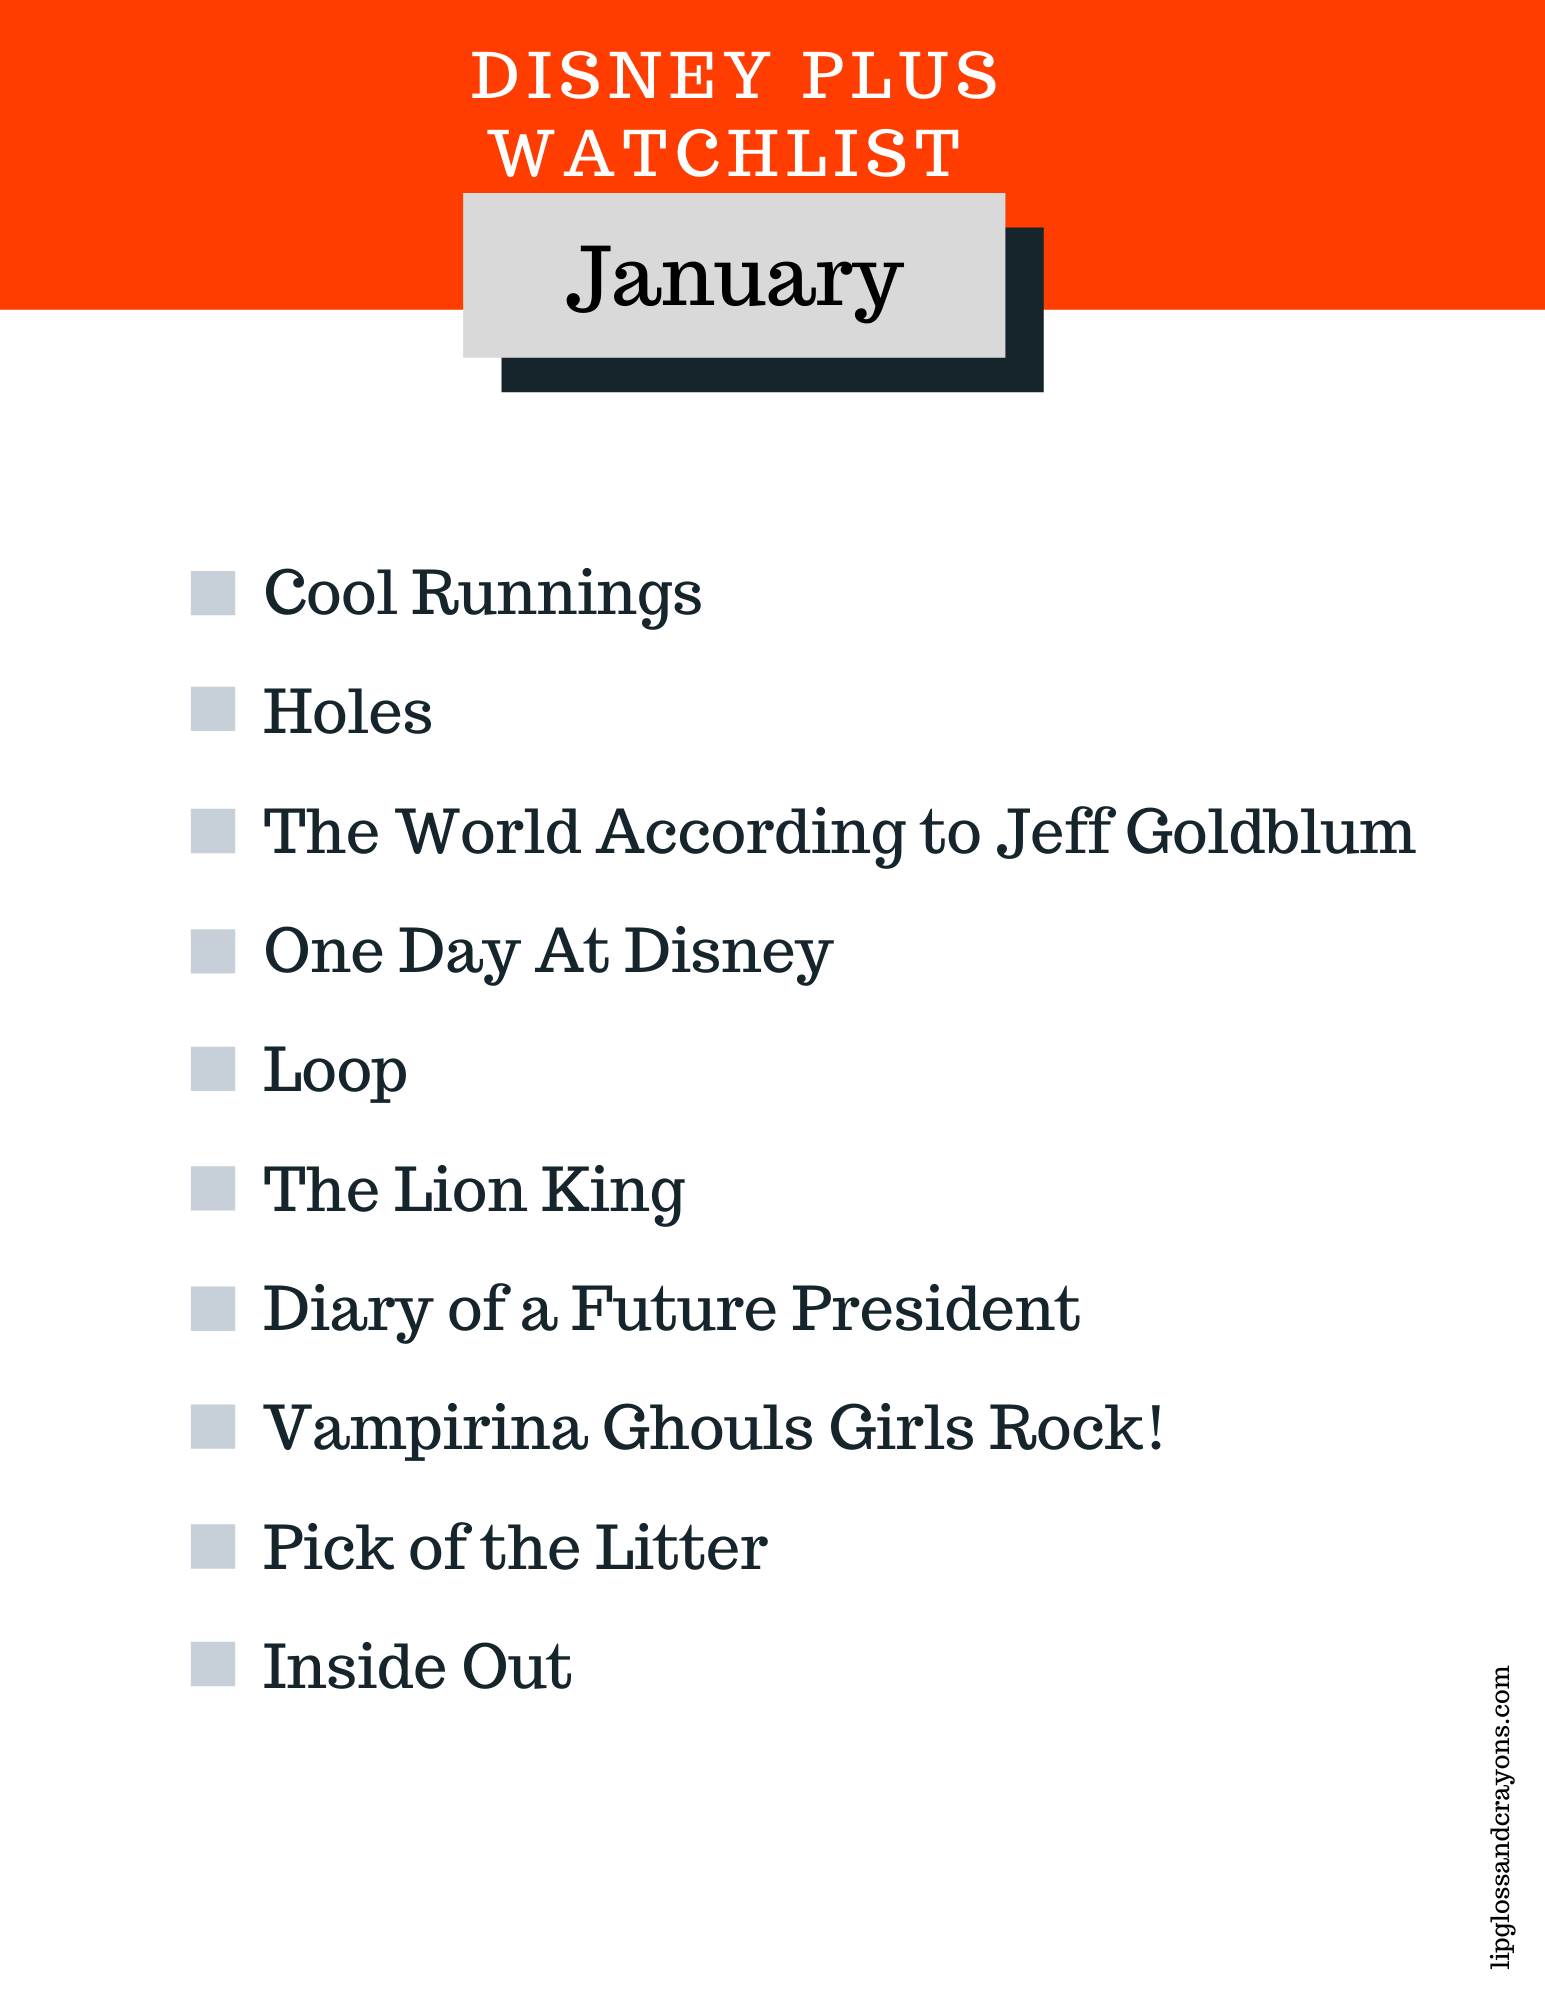 Looking for a list of Disney Plus movies to watch? This is the complete Disney Plus Watchlist for January!